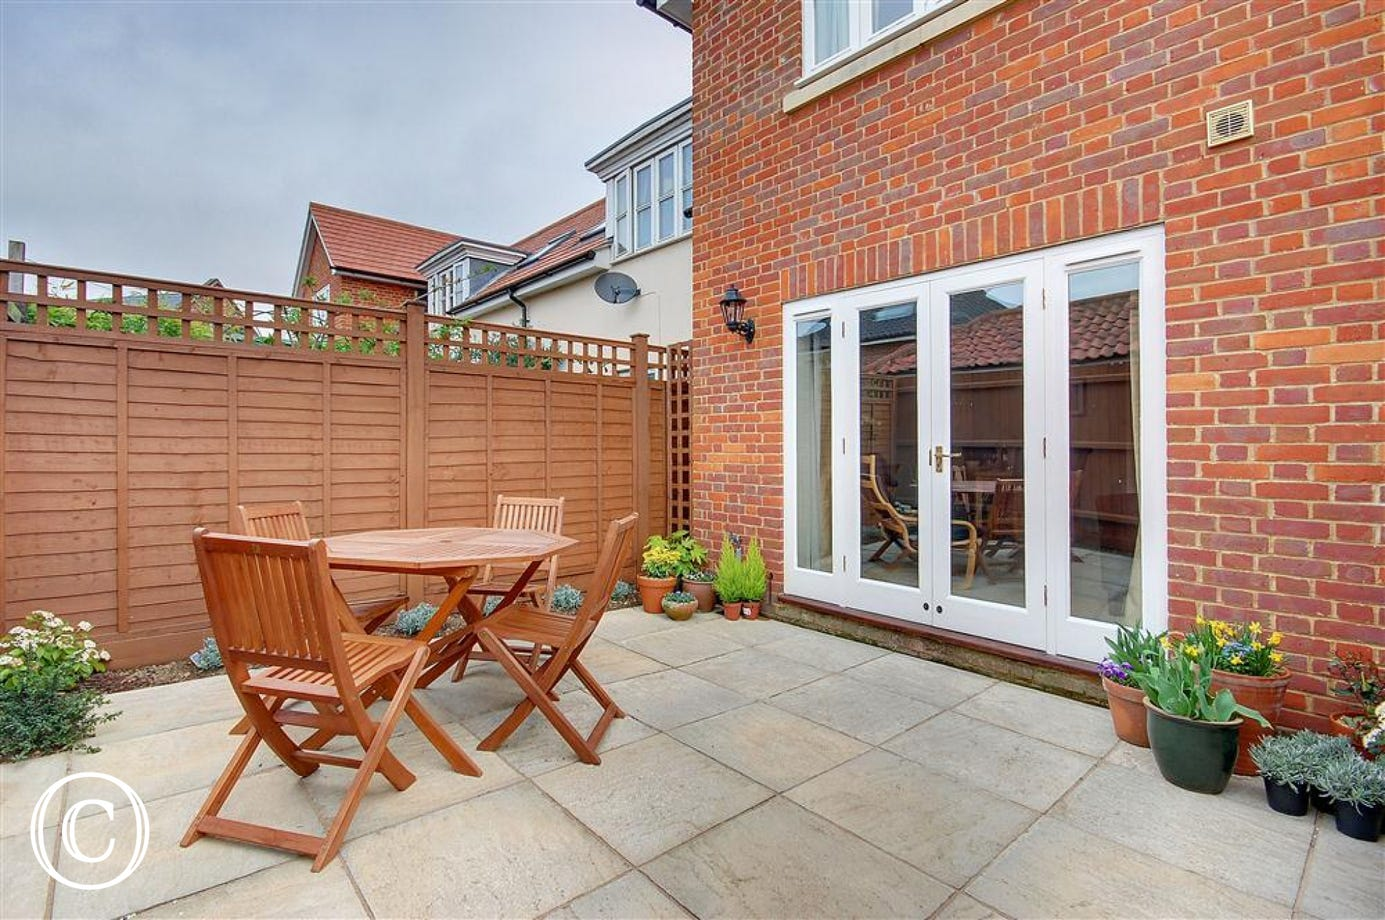 This paved rear courtyard garden with outside garden funriture will enable you to relax and enjoy outside.